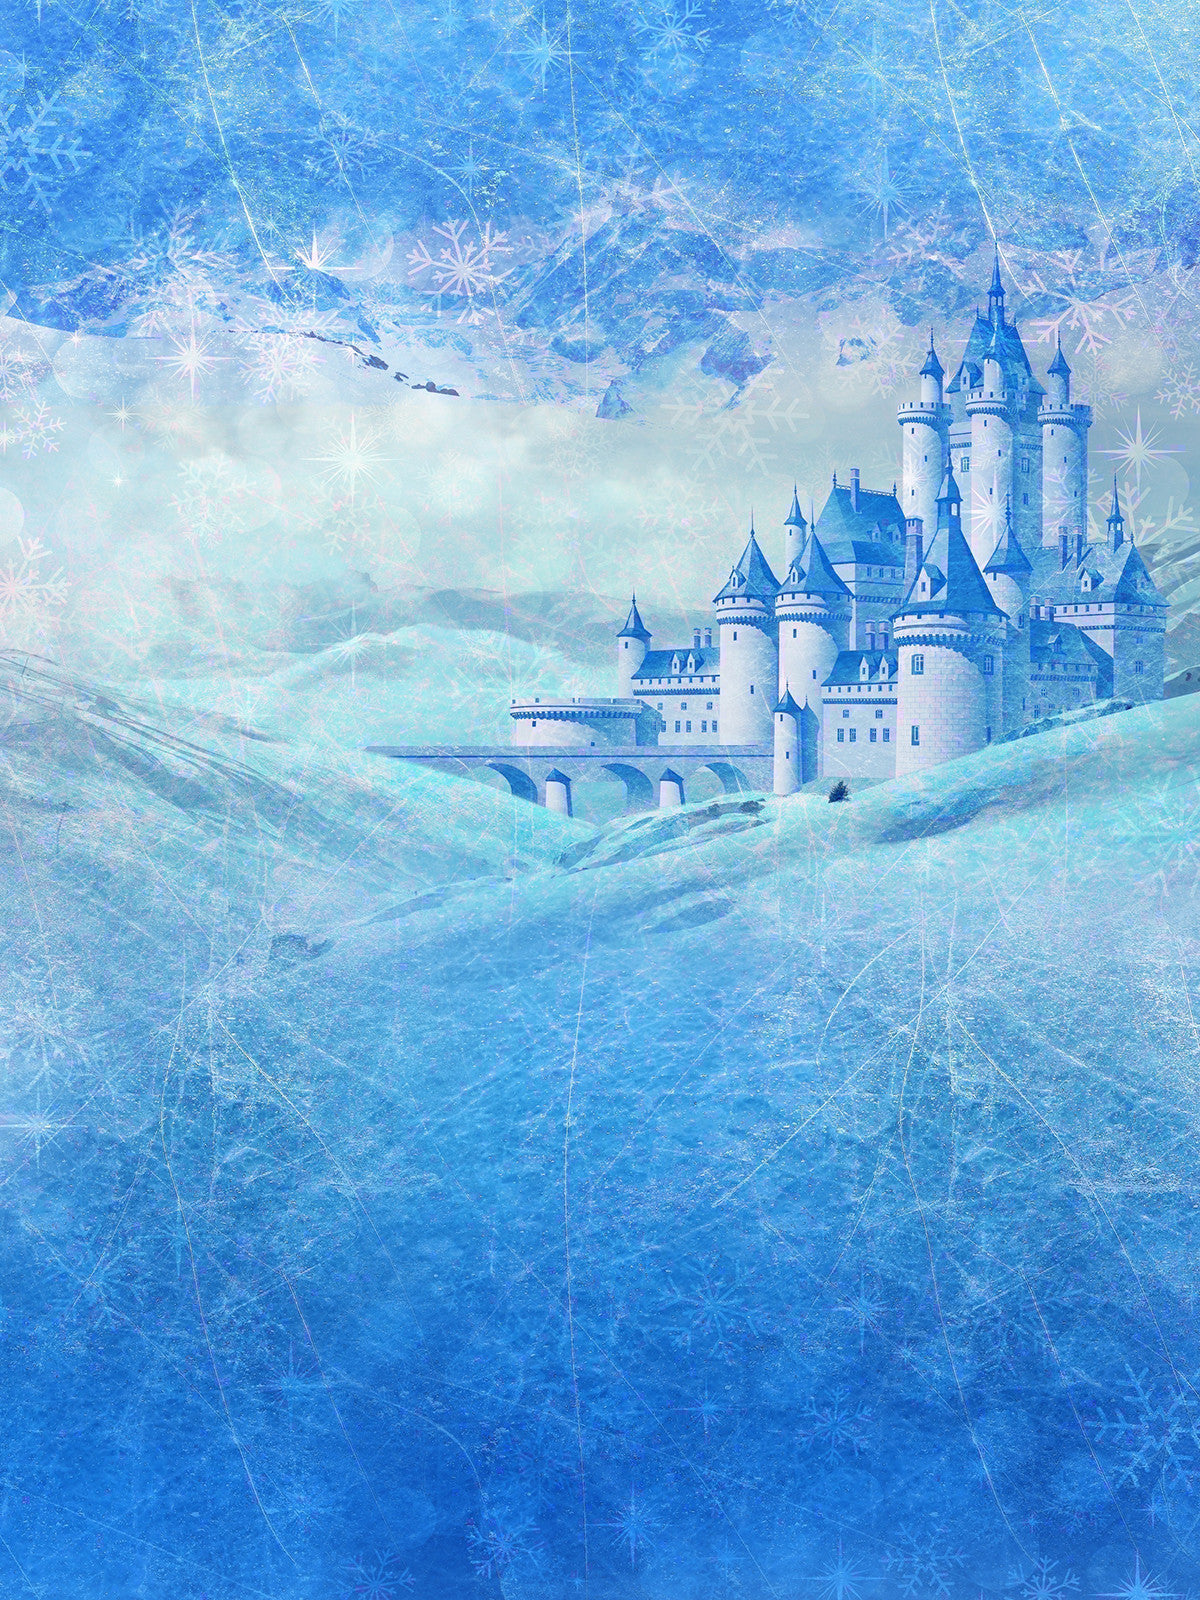 Frozen Inspired The Snow Queen Photo Backdrop / 8052 - DropPlace